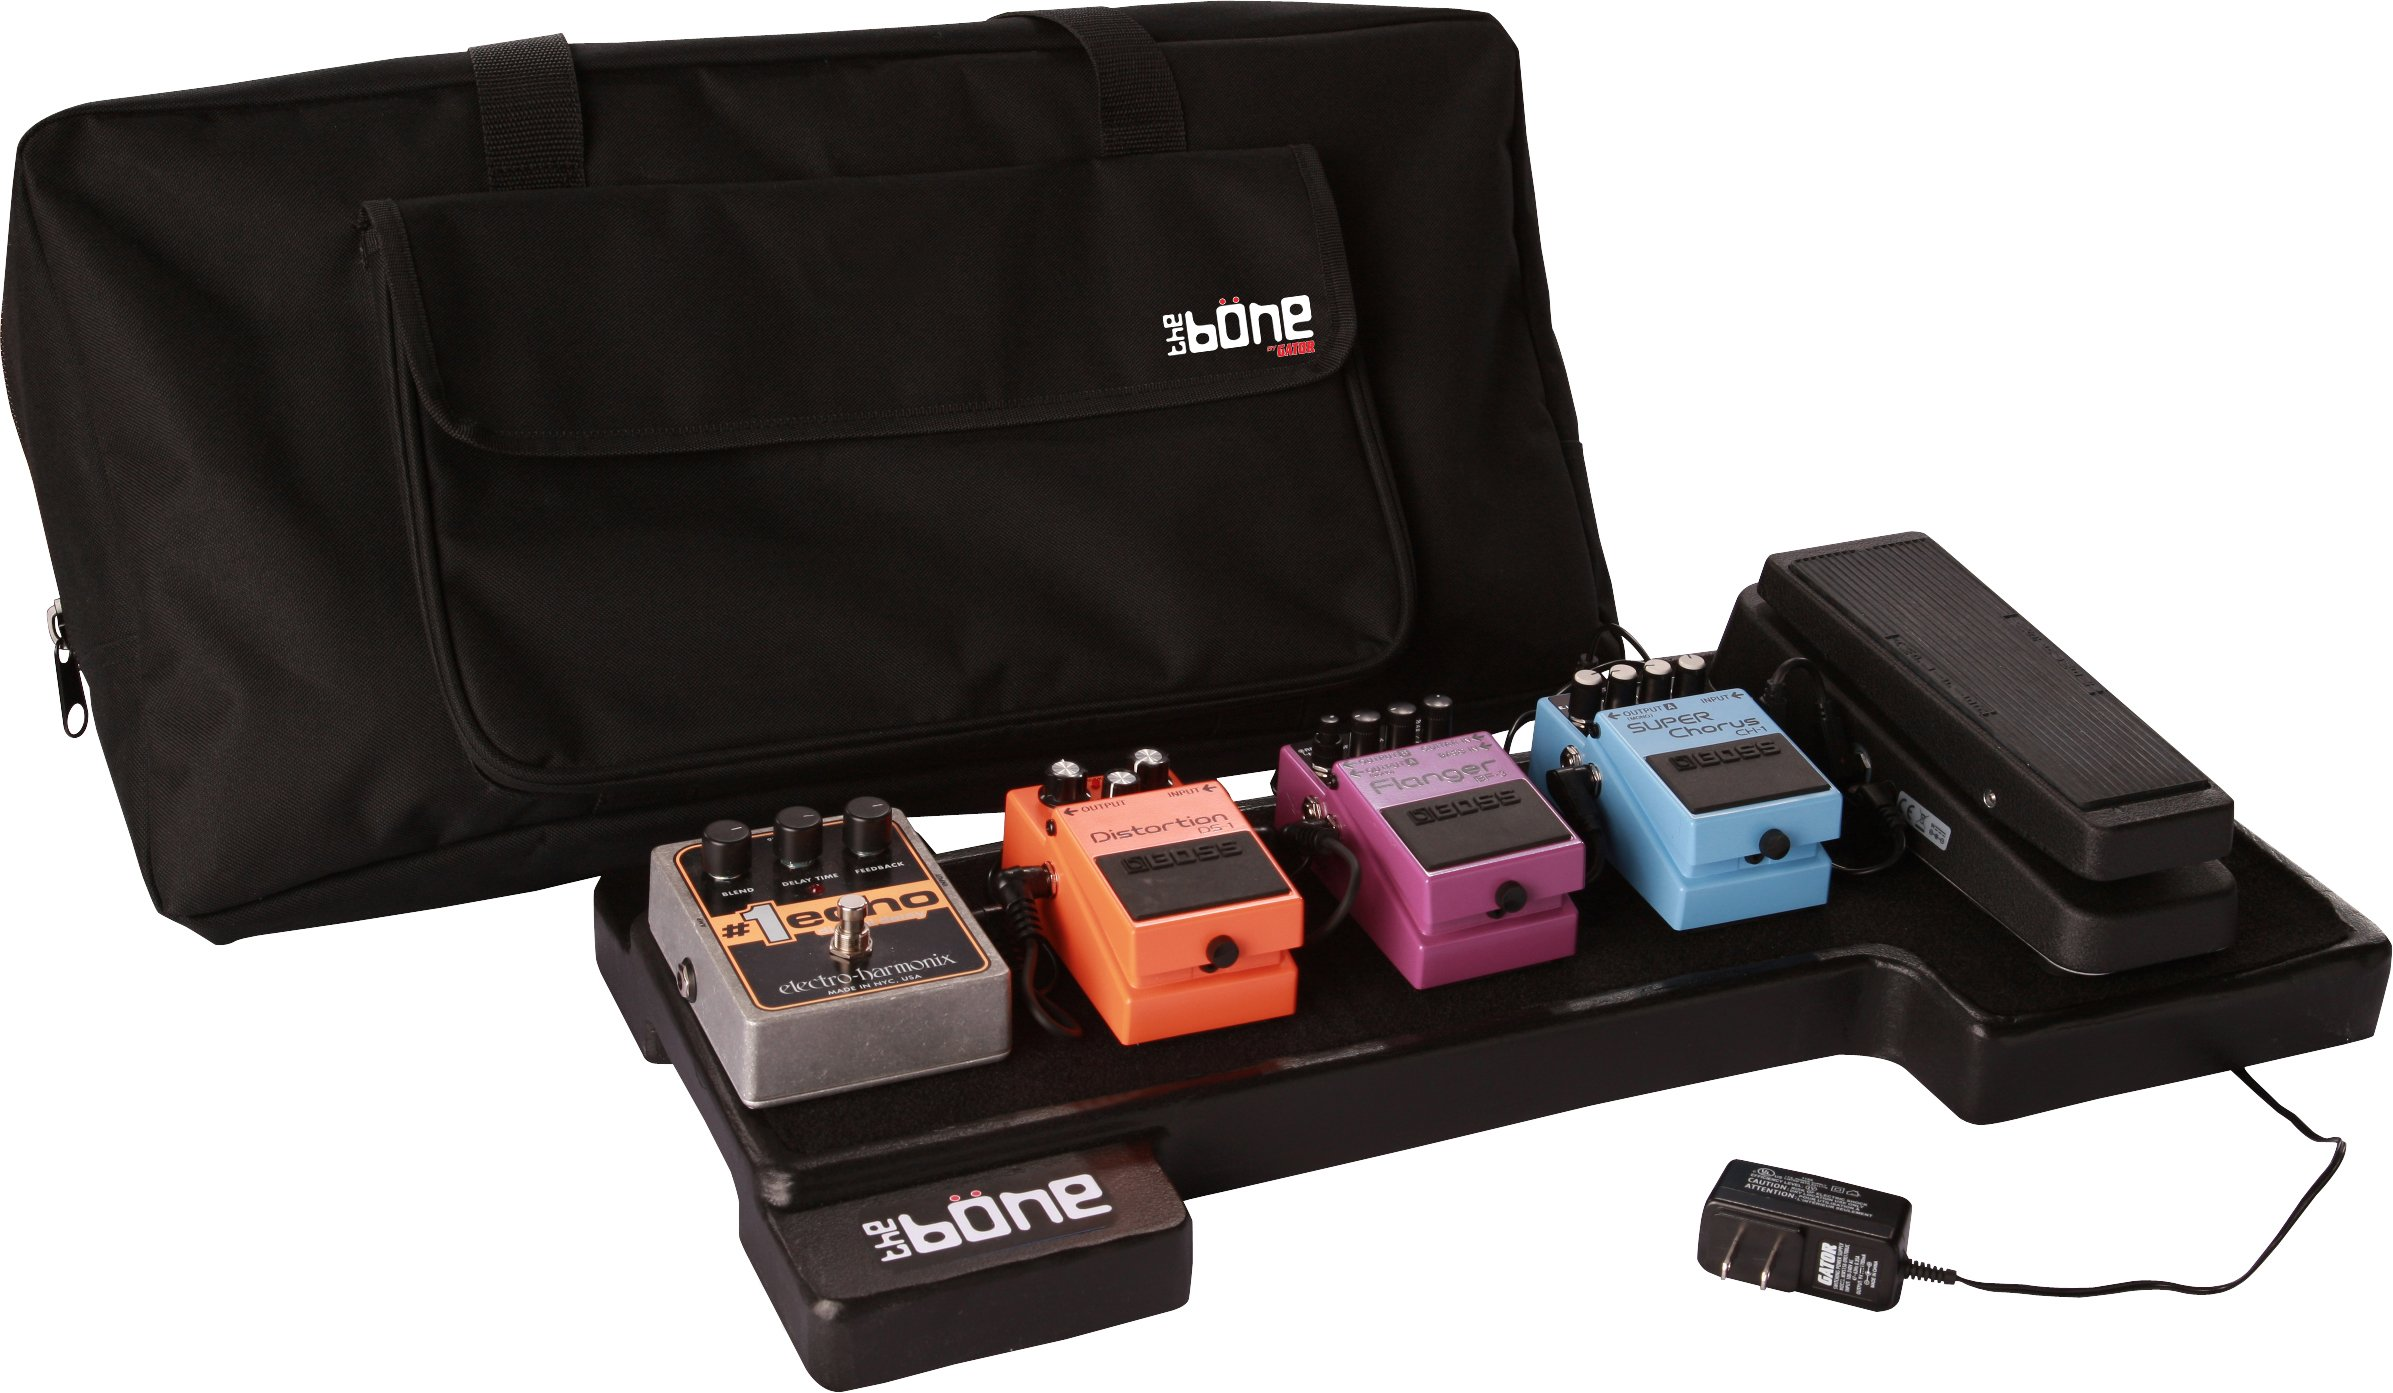 7818ffdb5881 Cheap Guitar Pedal Board, find Guitar Pedal Board deals on line at ...